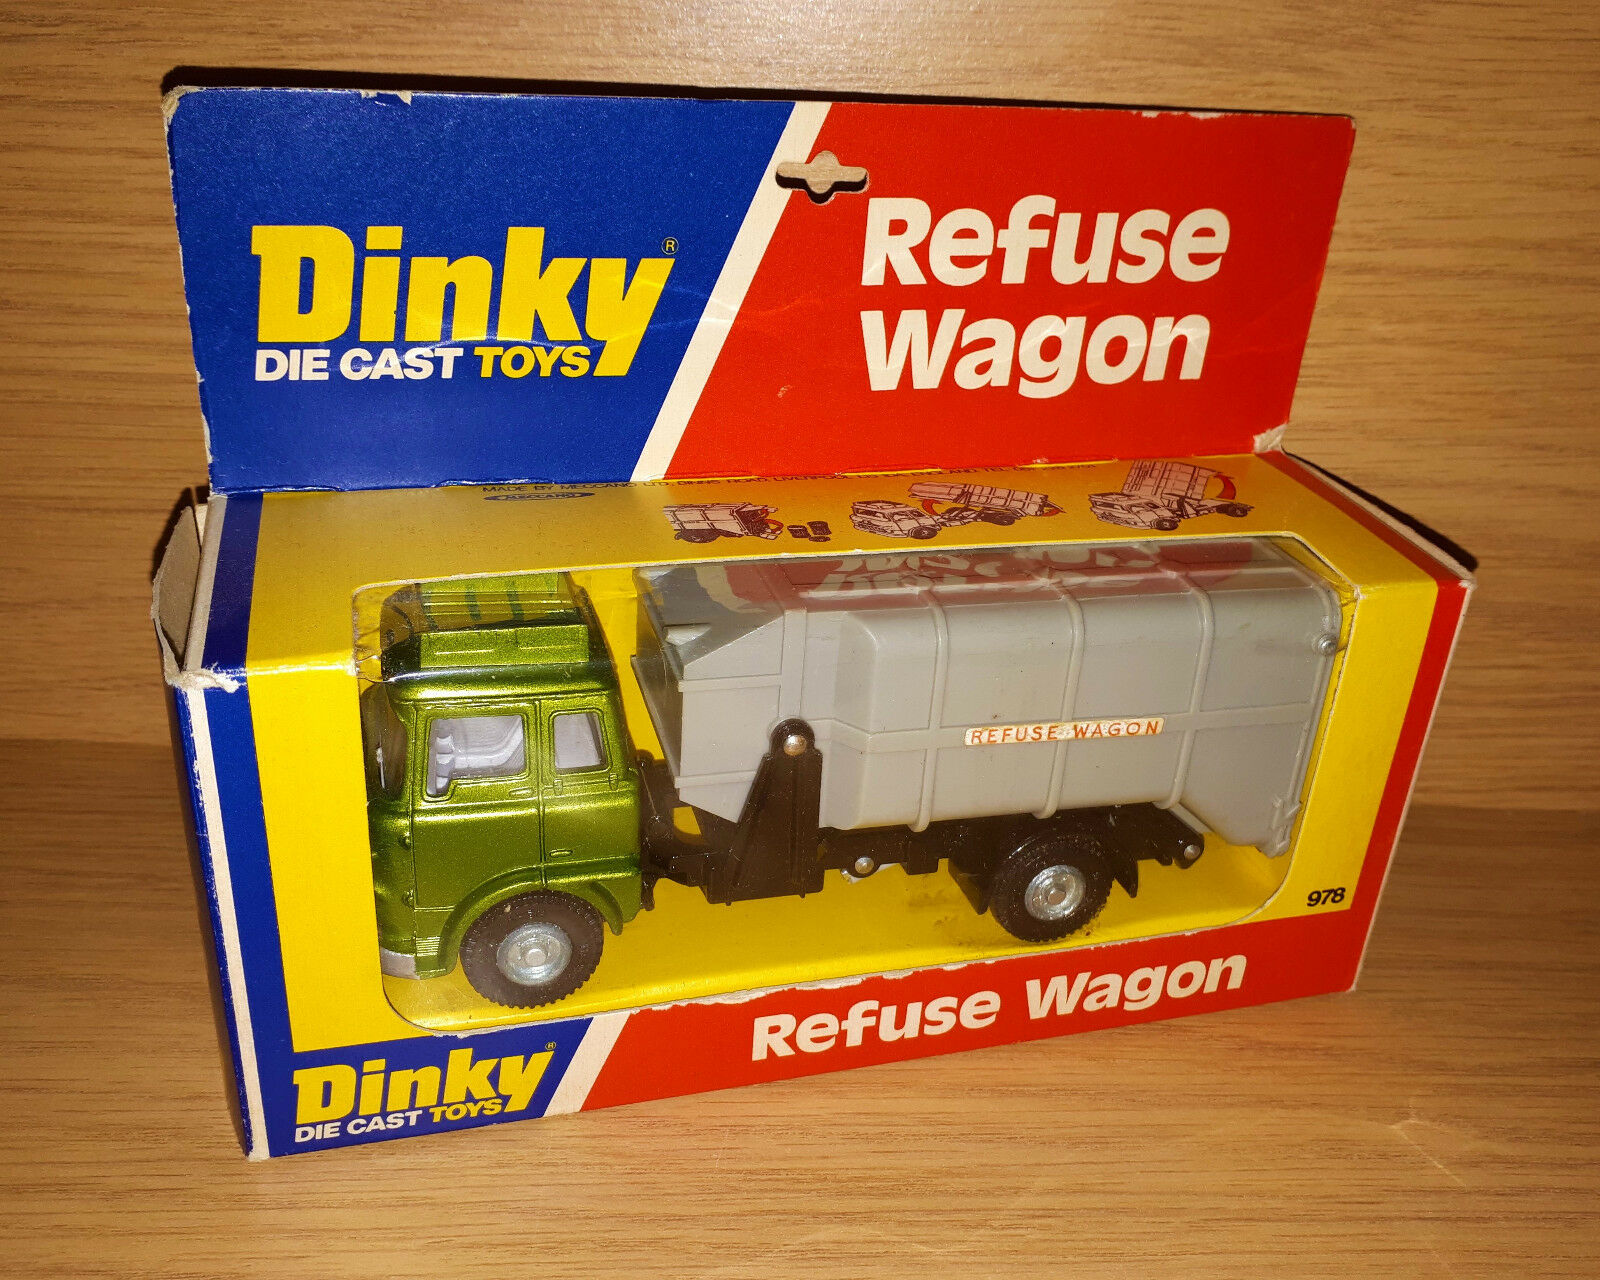 DINKY TOYS Nº 978 REFUSE WAGON Comme neuf IN BOX 1976 Edition